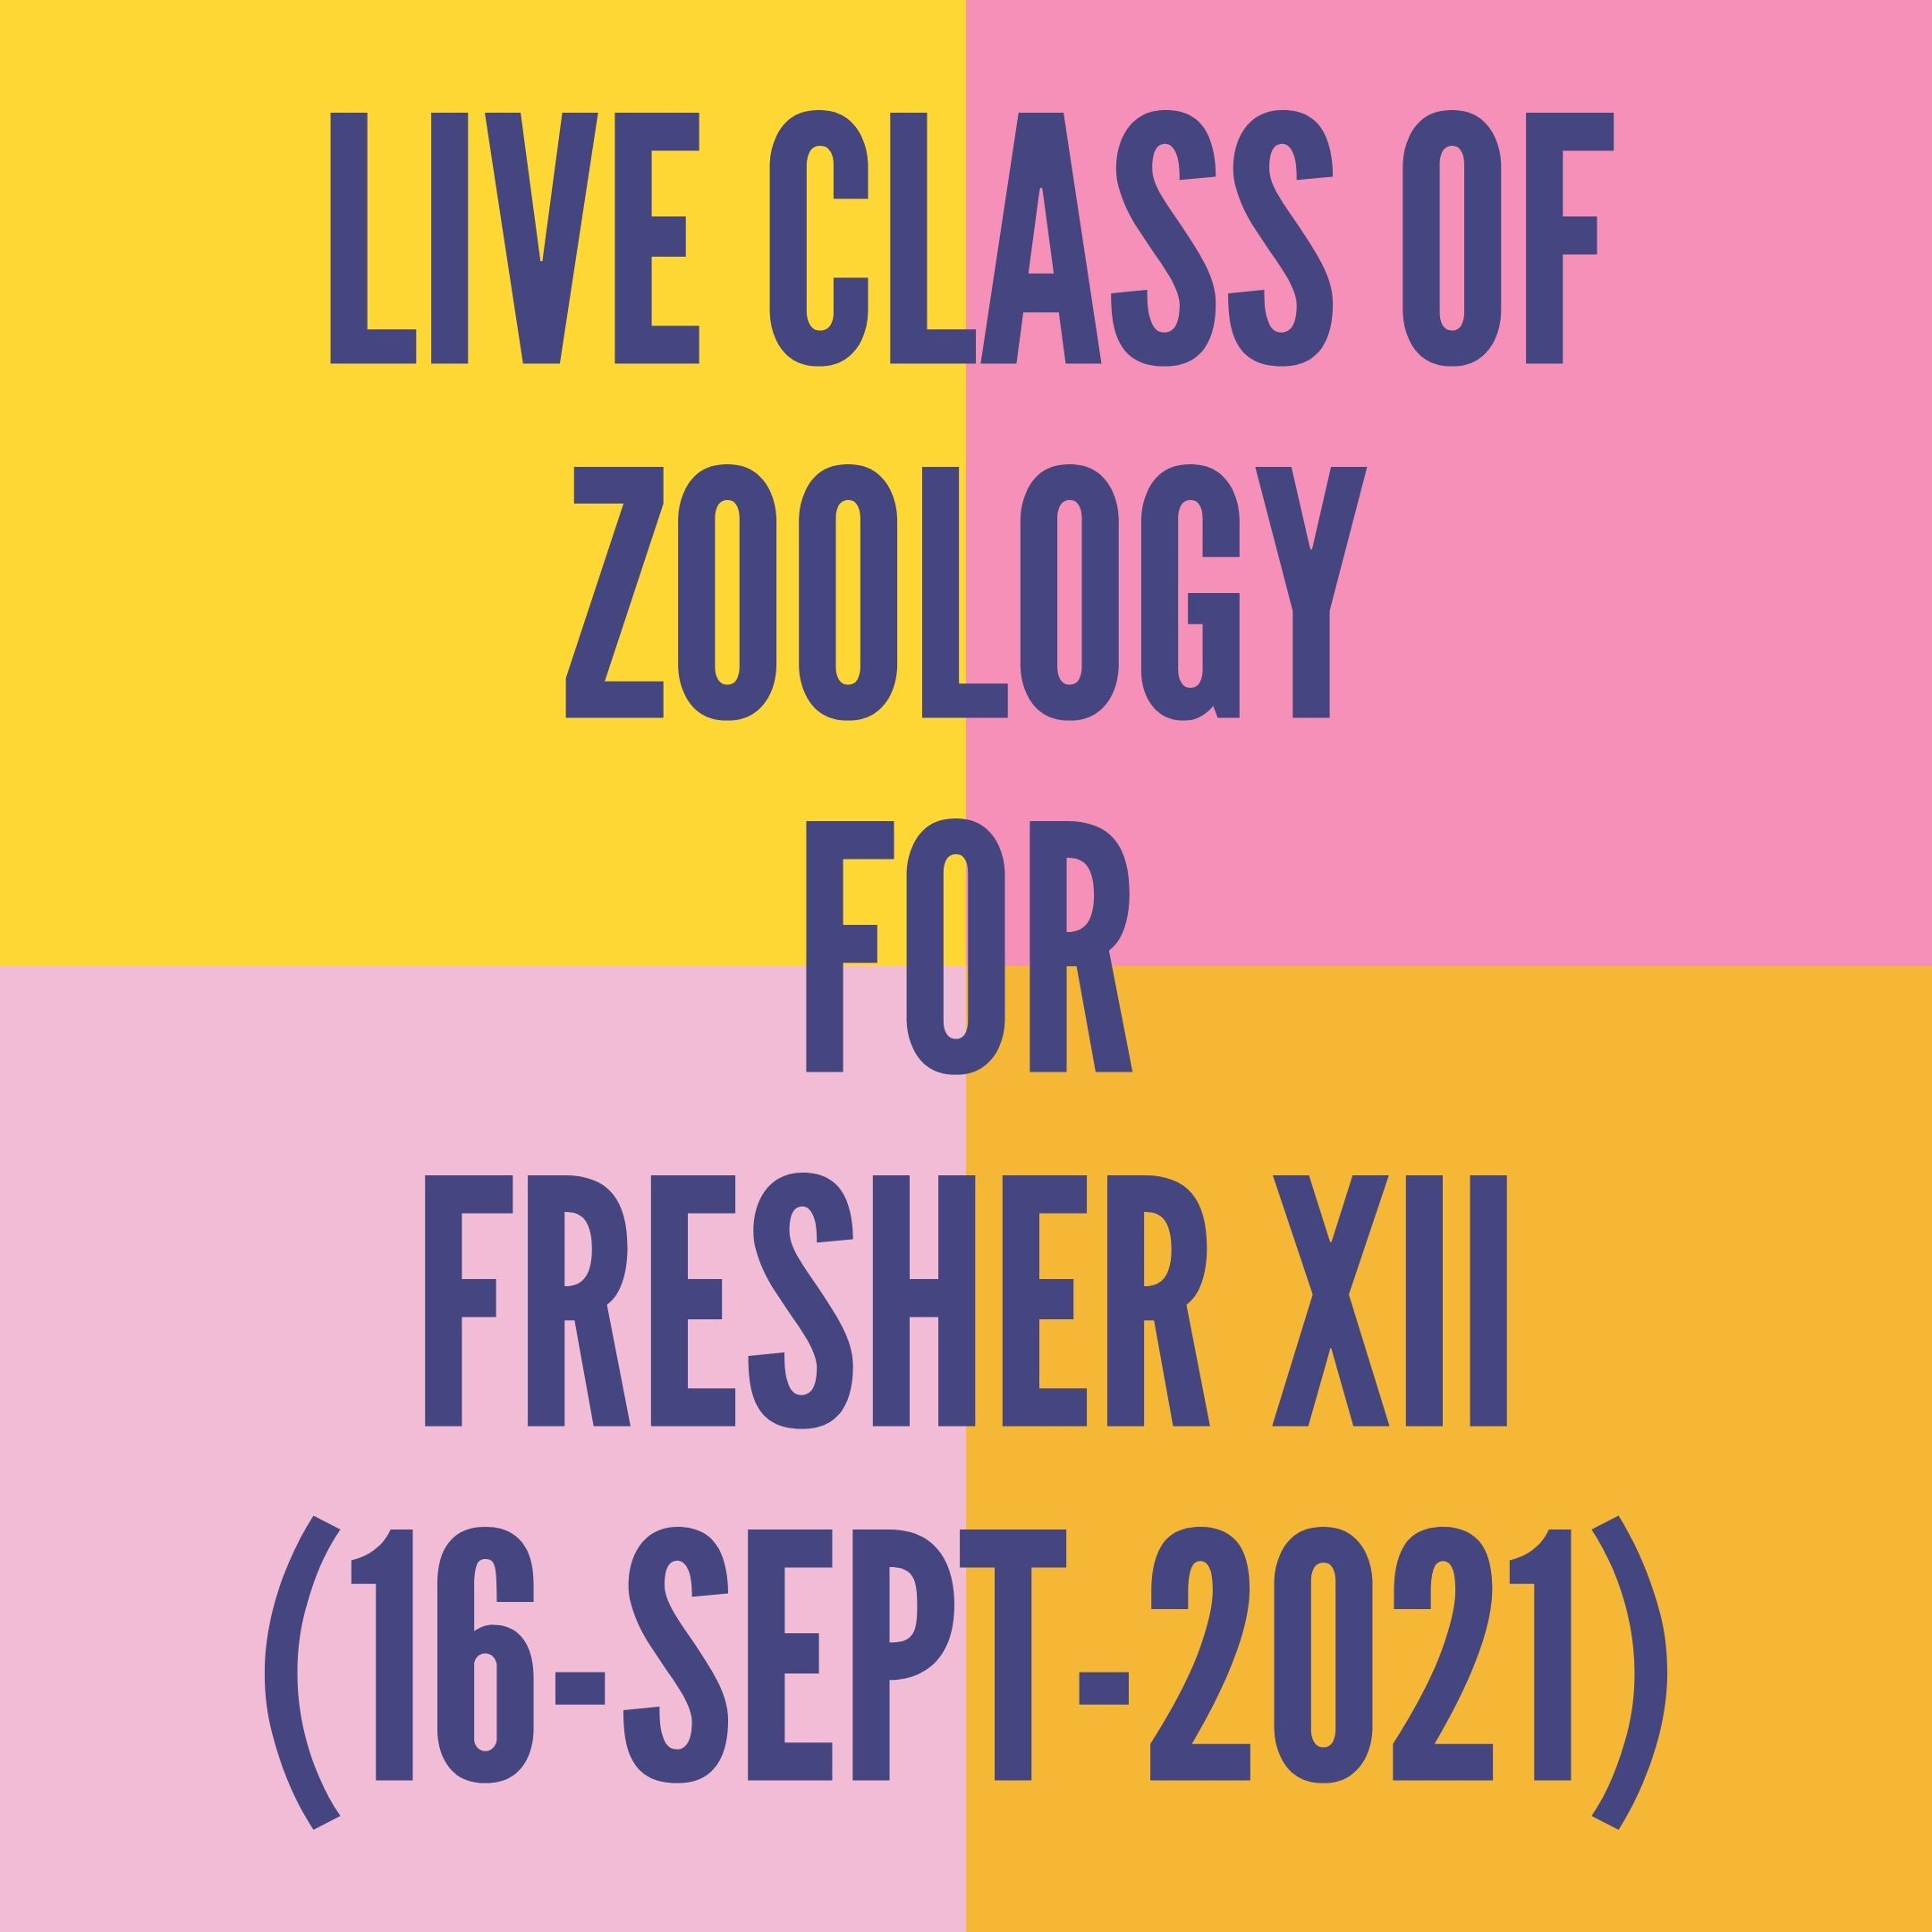 LIVE CLASS OF ZOOLOGY FOR FRESHER XII (16-SEPT-2021) HUMAN HEALTH & DISEASE